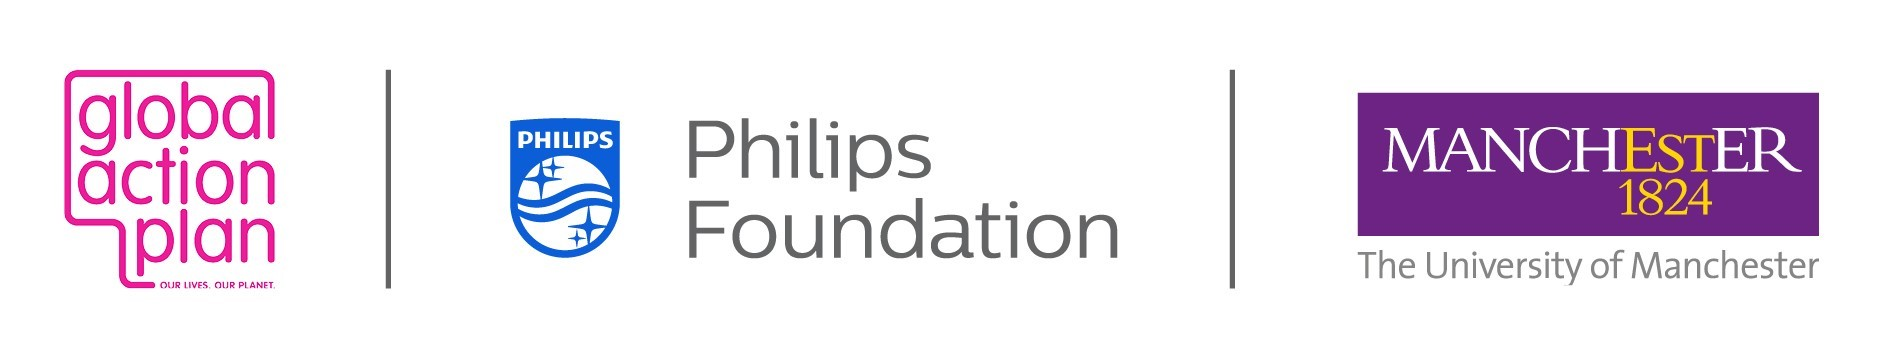 Logos for Global Action Plan, Philips Foundation and The University of Manchester